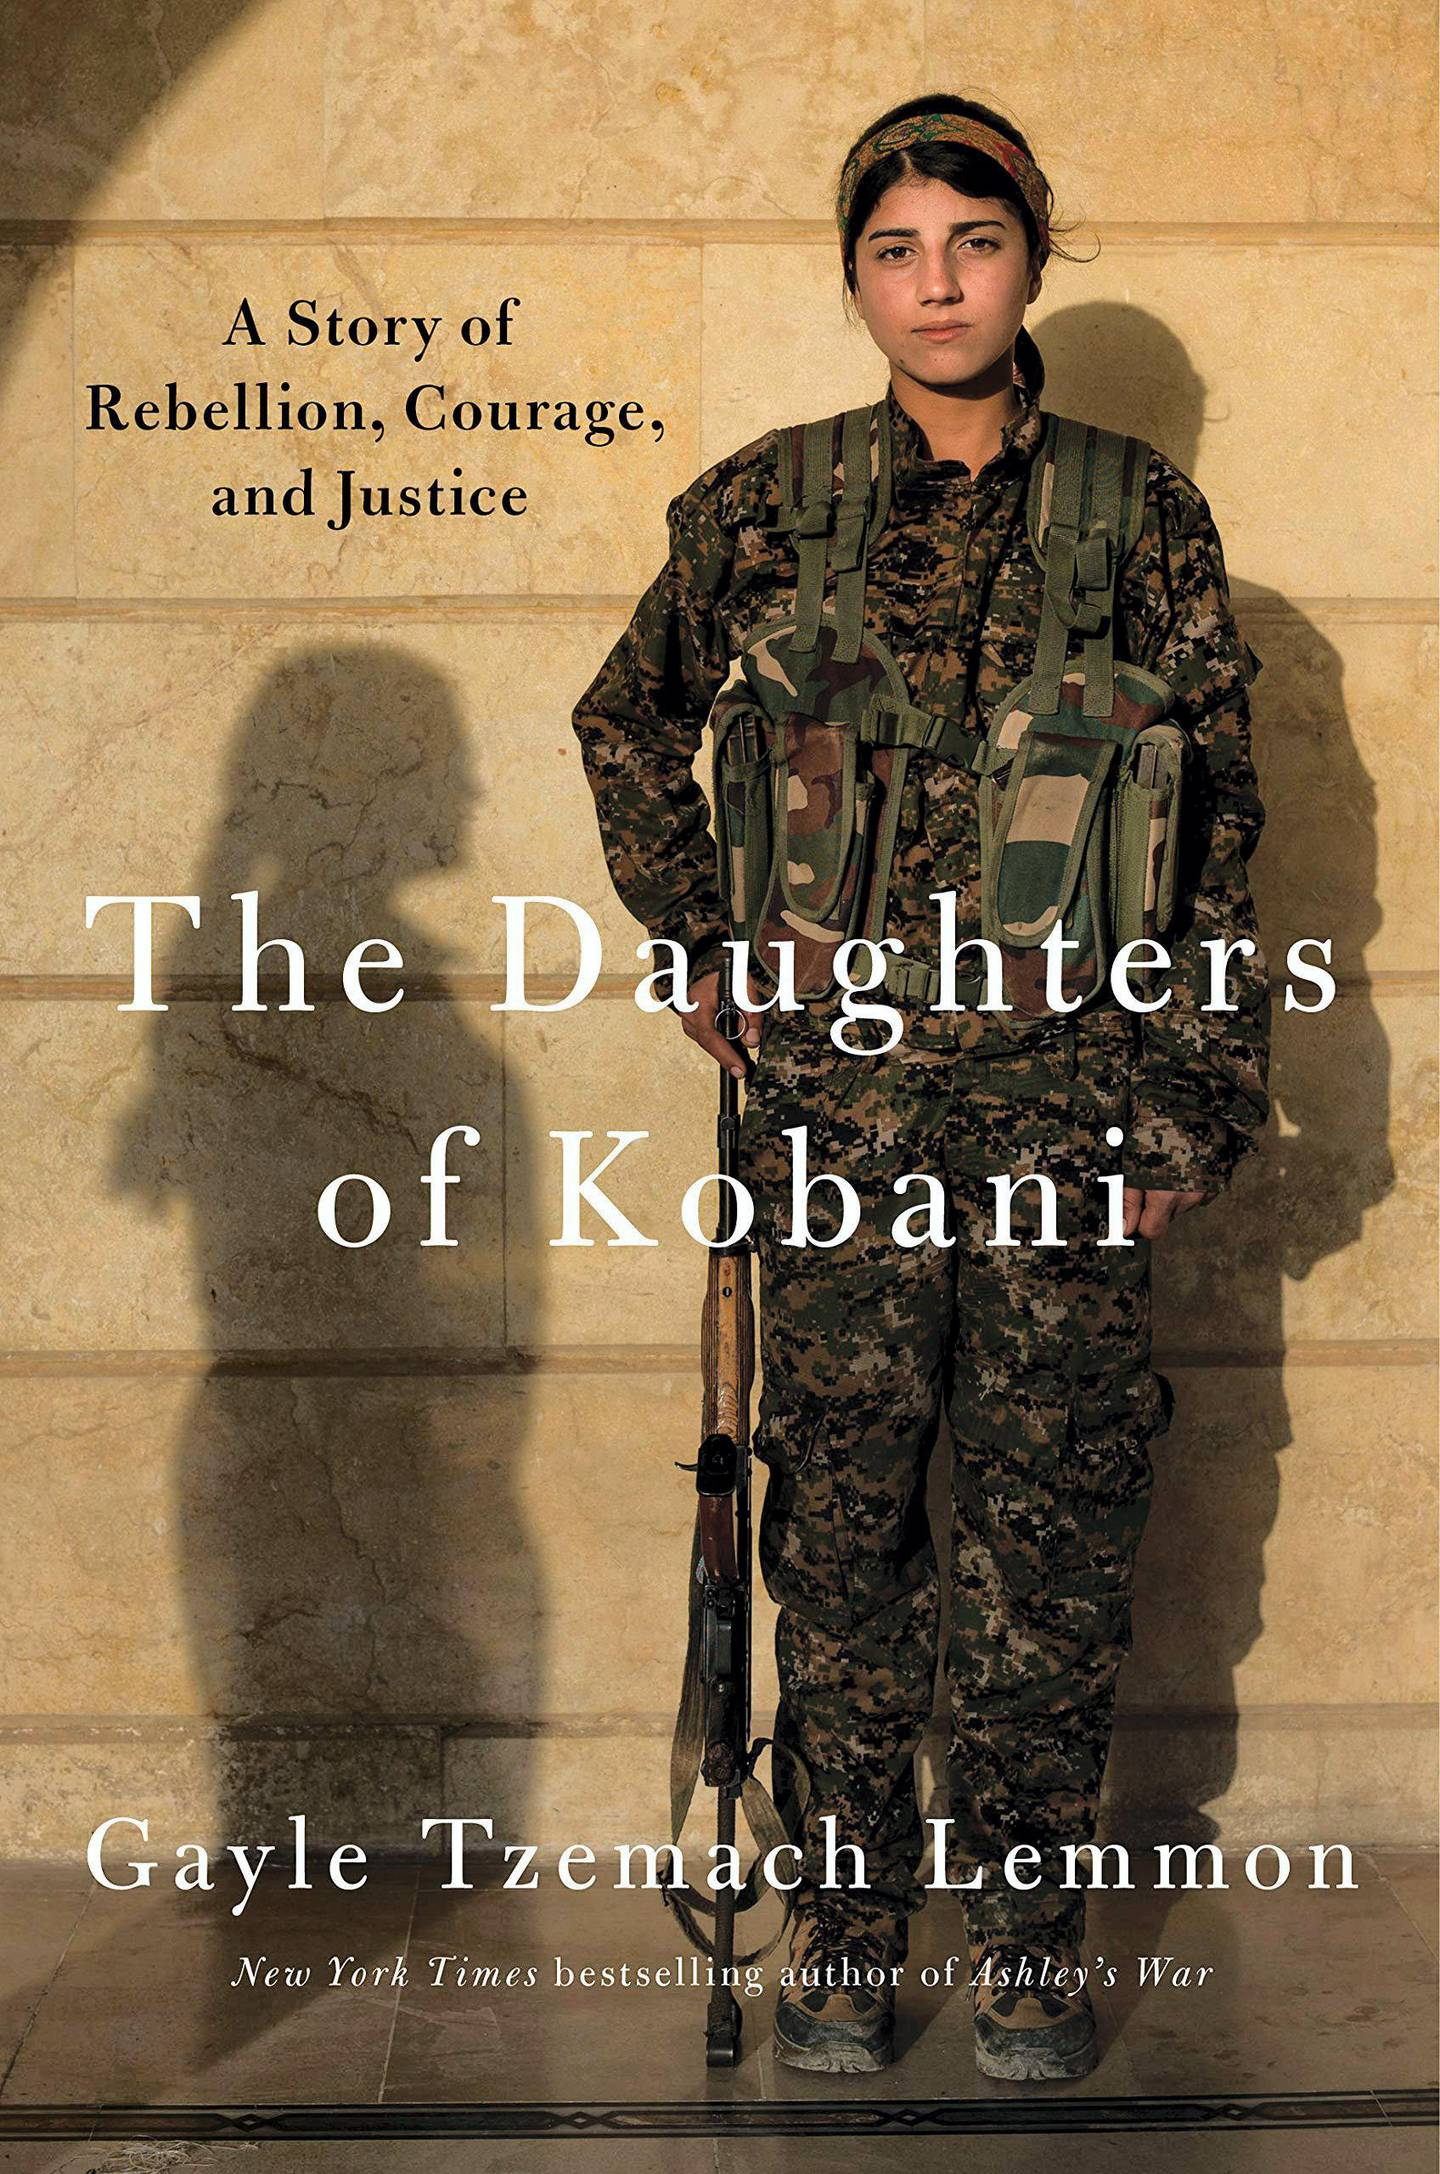 The Daughters of Kobani: A Story of Rebellion, Courage and Justice. Courtesy Penguin Press